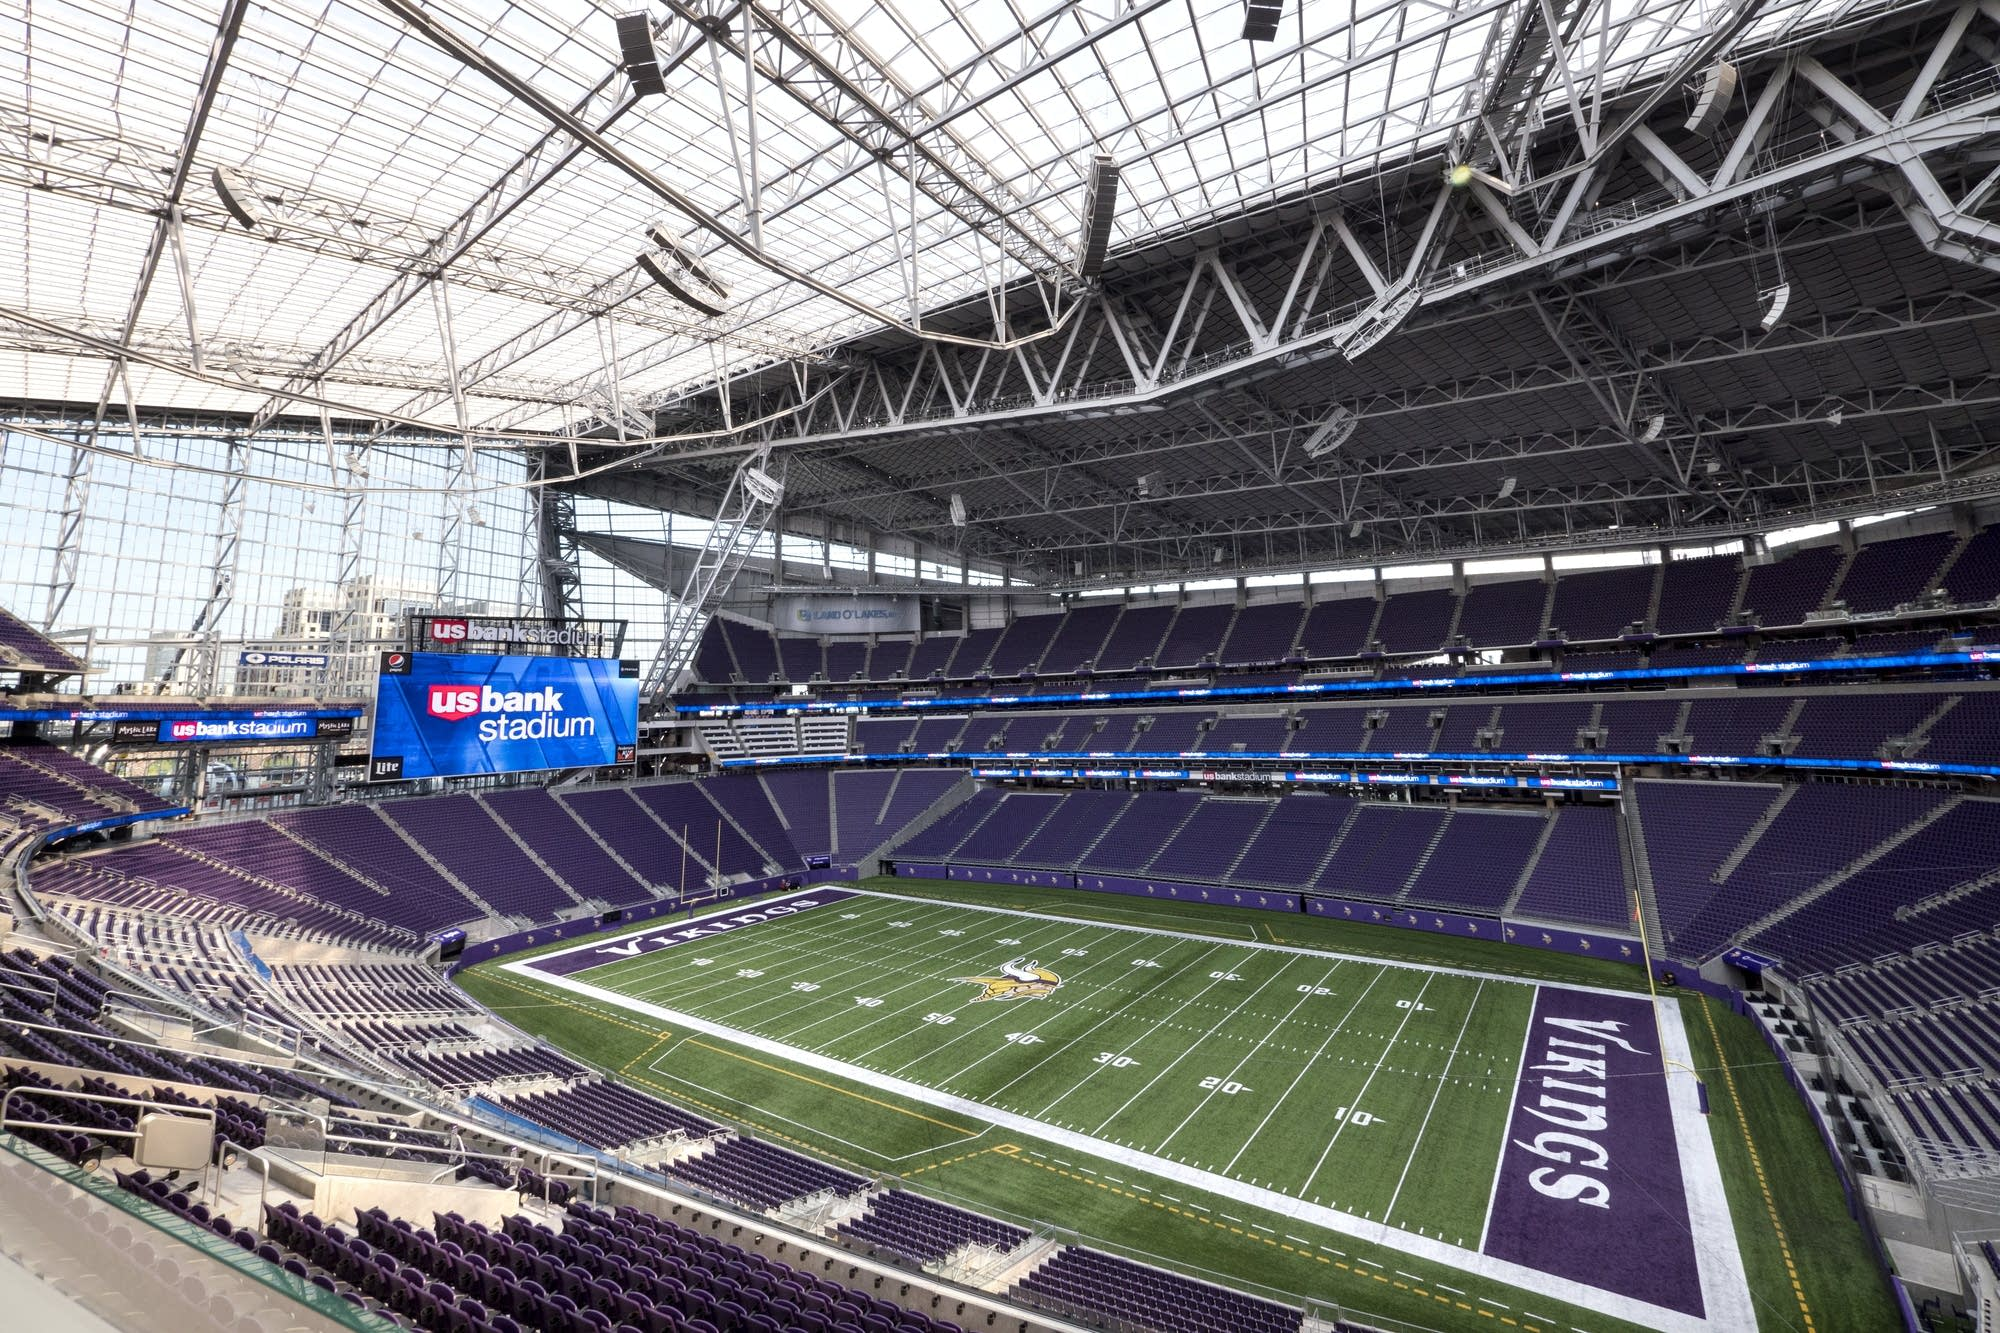 The field of the new Vikings stadium